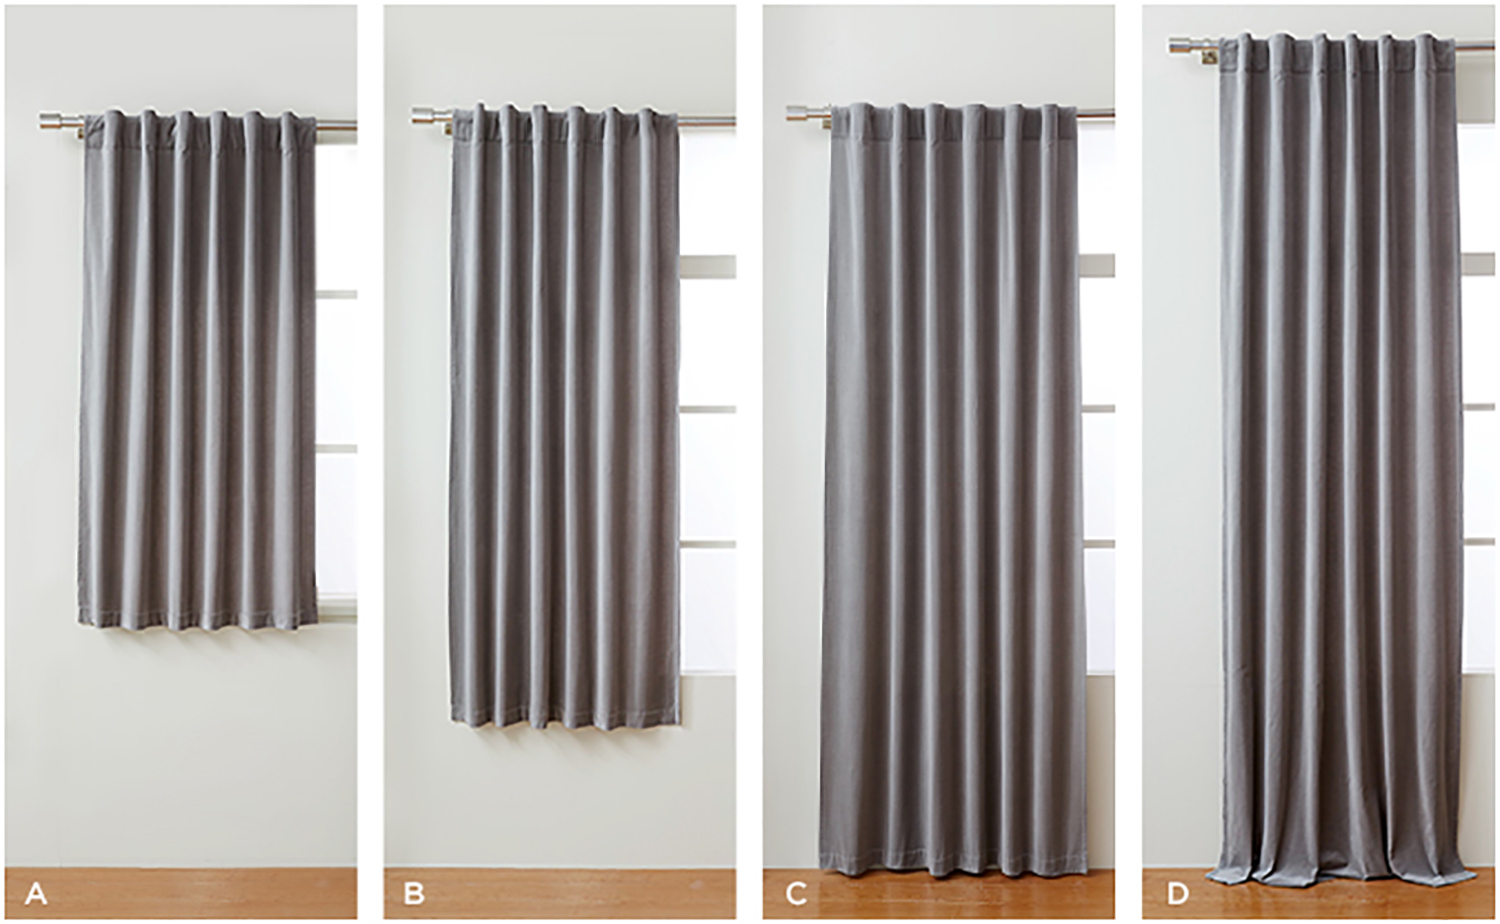 Window Coverings To Keep Heat Out How To Choose The Right Curtains Front Main